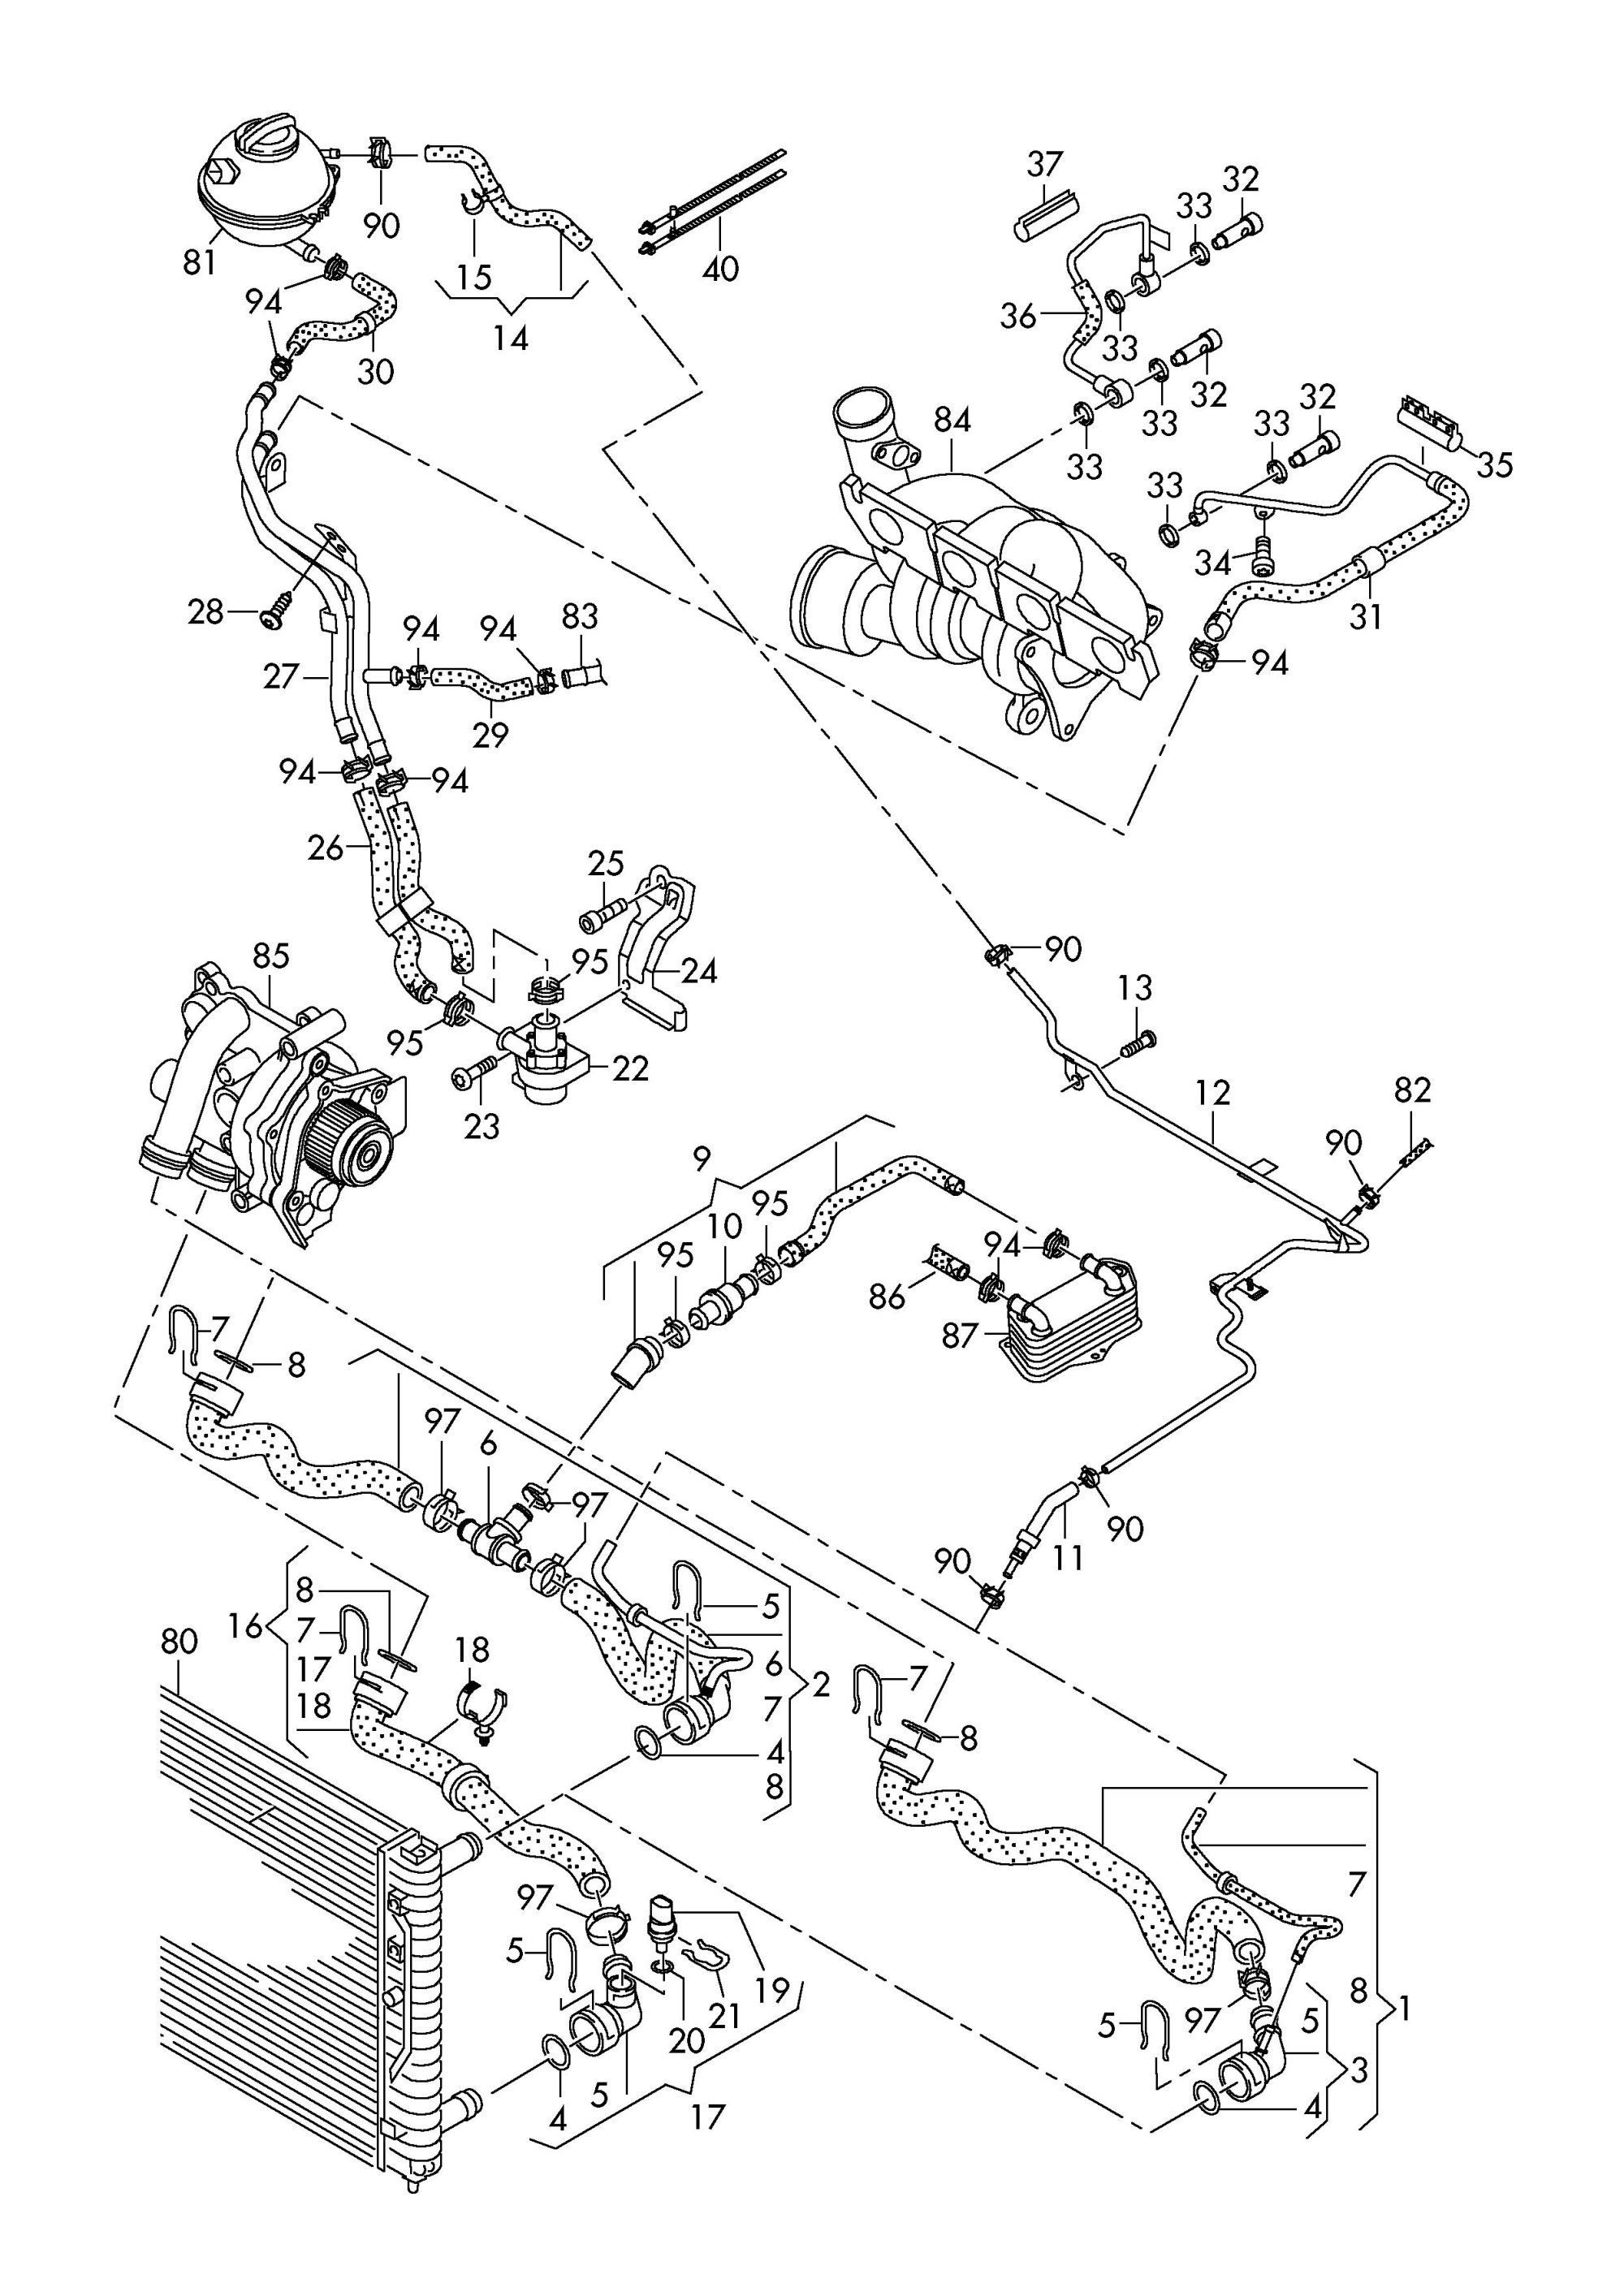 hight resolution of ea888 gen 3 engine diagram get free image about wiring 2009 volkswagen tiguan engine water hose